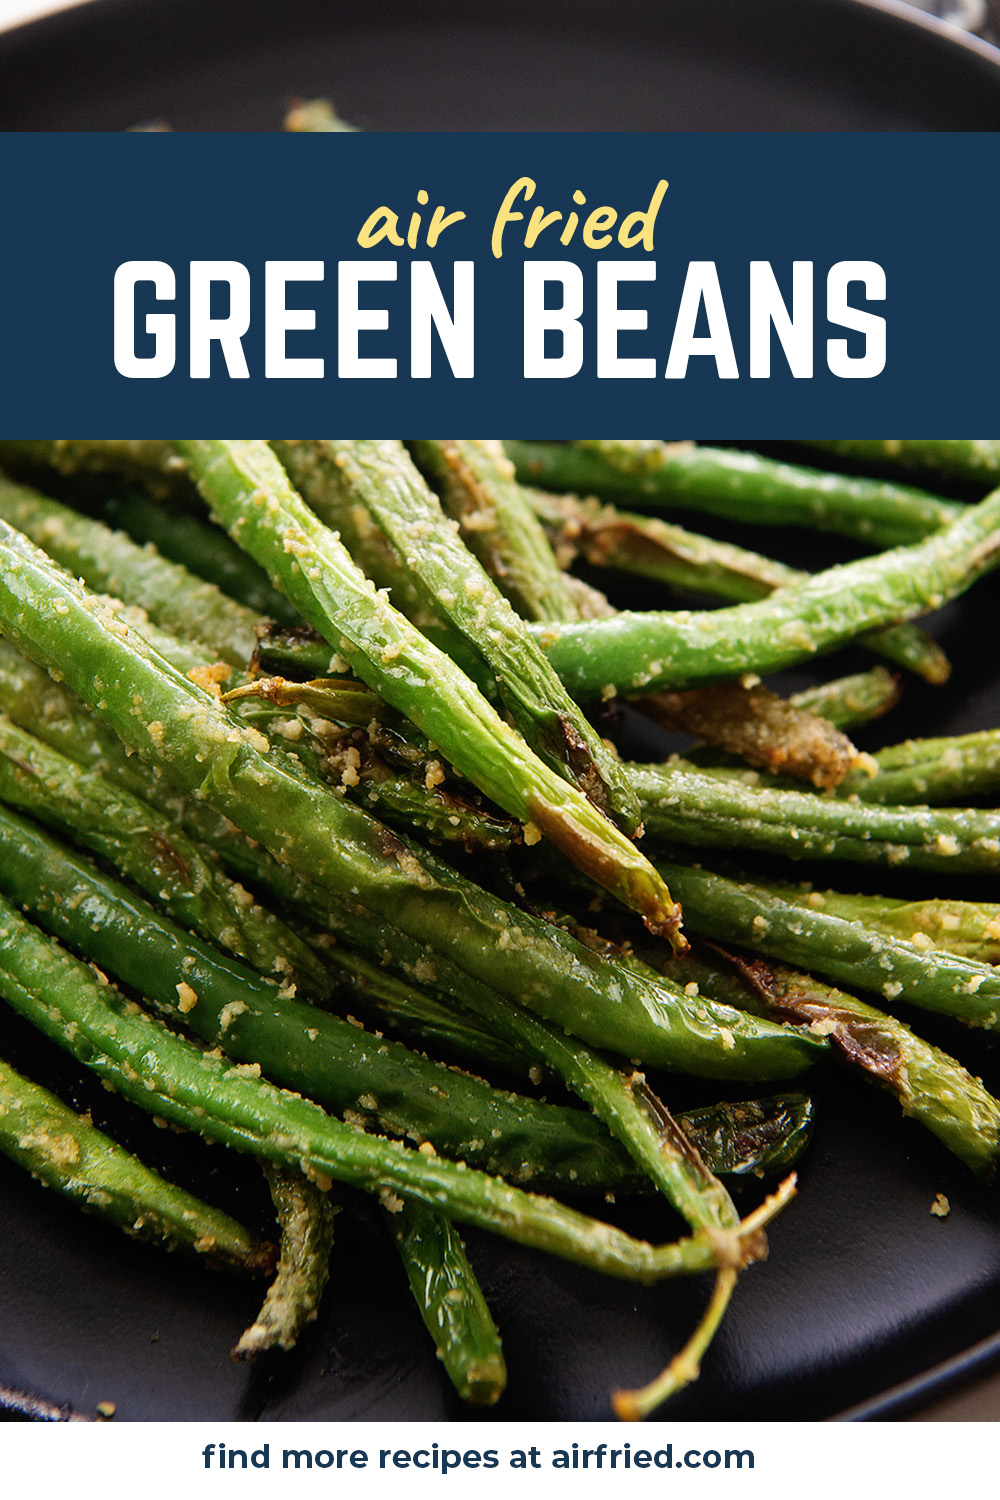 These green beans are air fried with garlic and parmesan seasoning for a magnificent side dish!